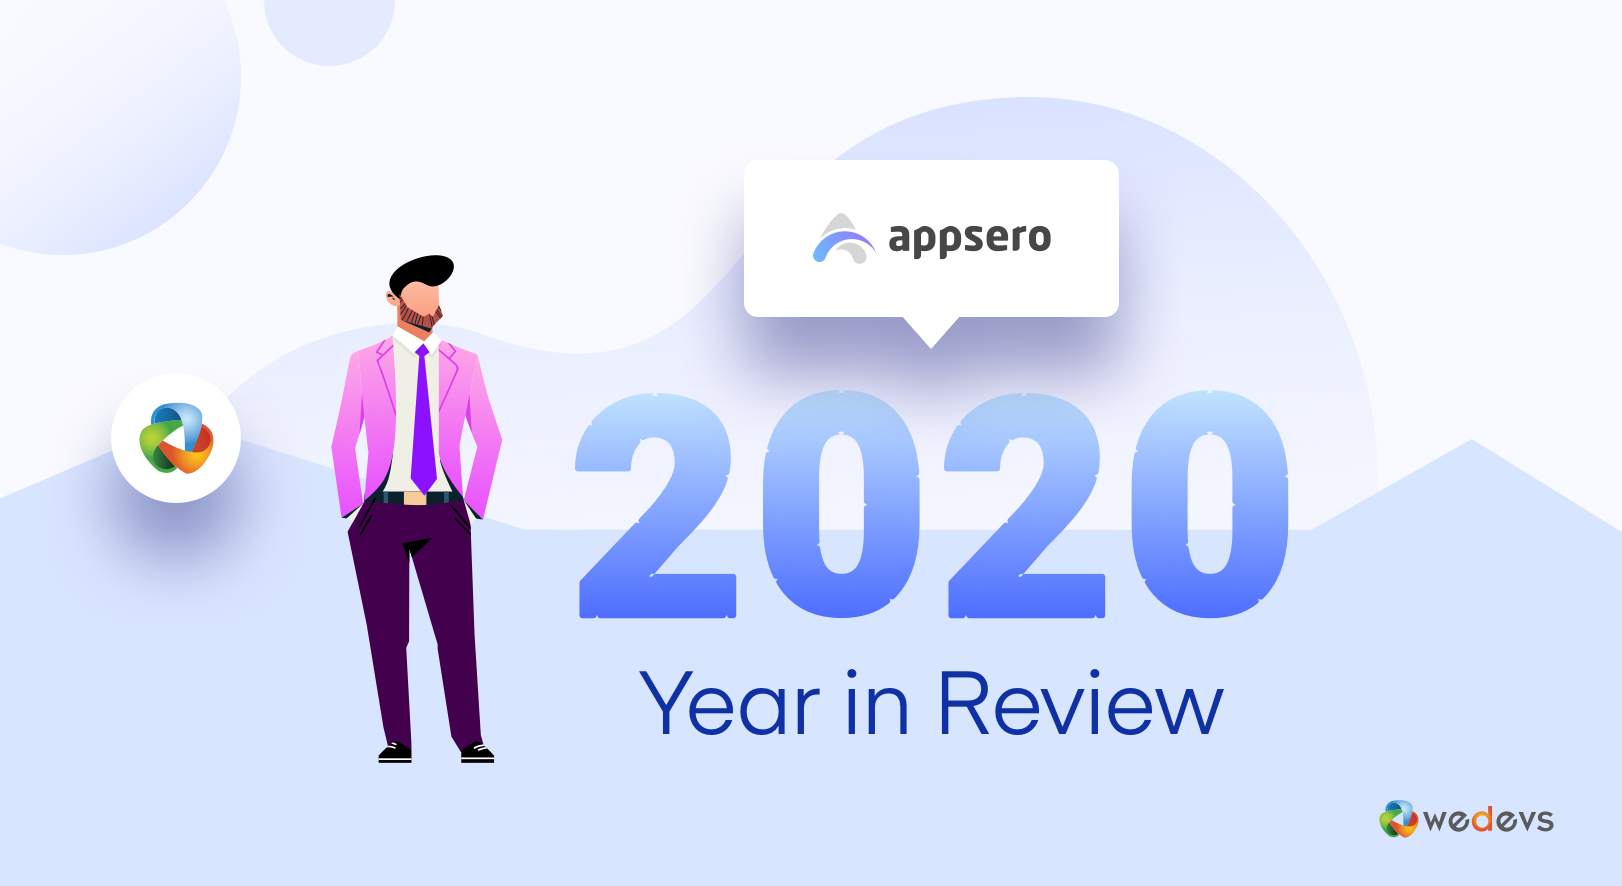 Appsero Review 2020: A Year of Serving WordPress Developers to Make Their Business Journey Easier